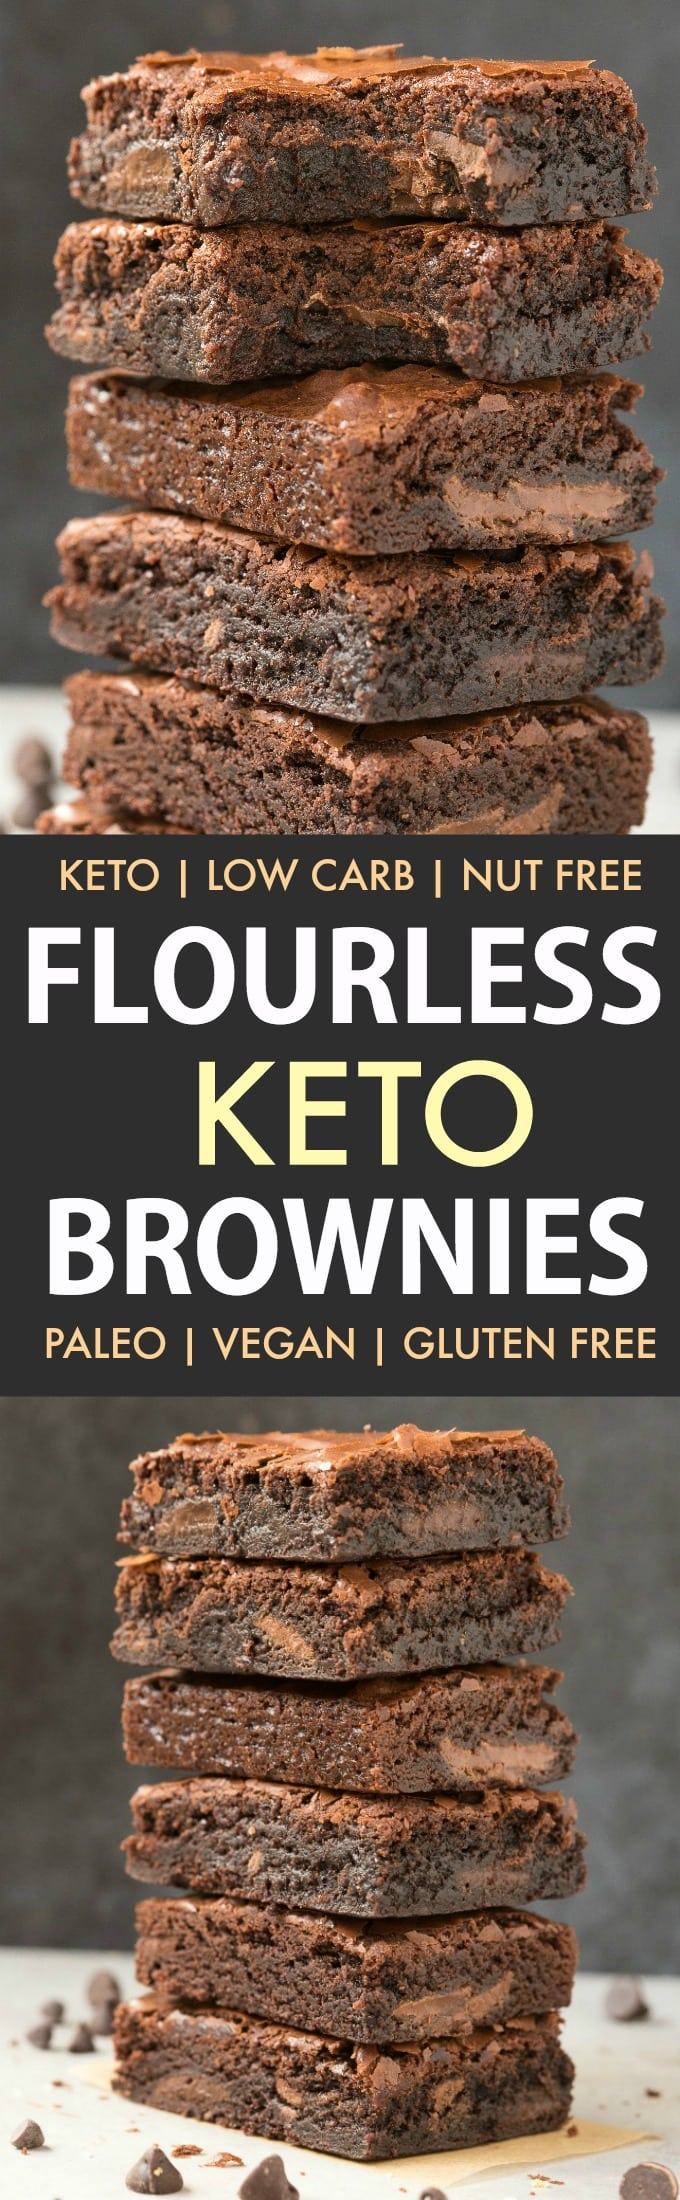 Flourless Keto Brownies in a collage